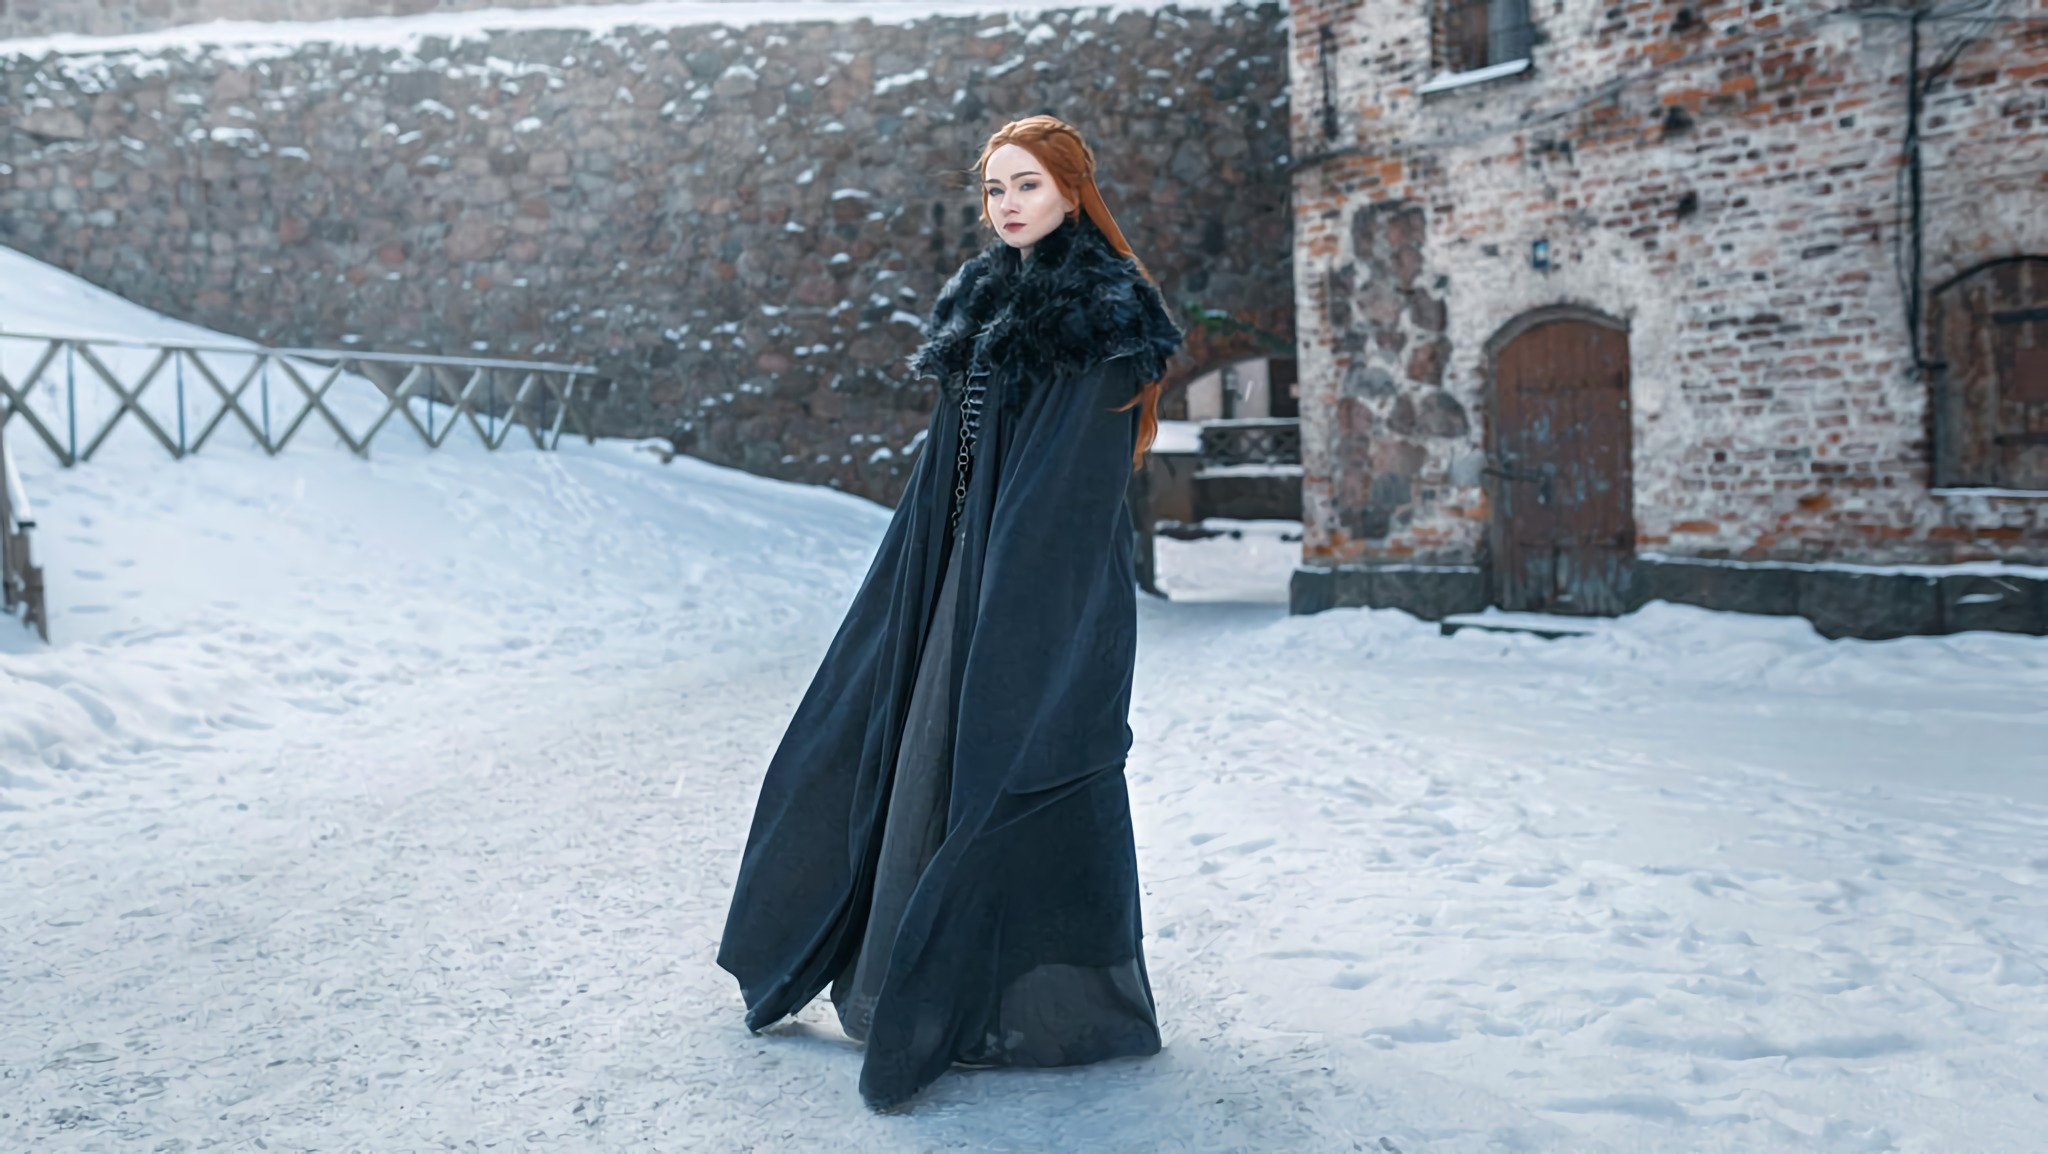 Cosplayer Grange Air is the spitting image of Game of Thrones' Sansa Stark.